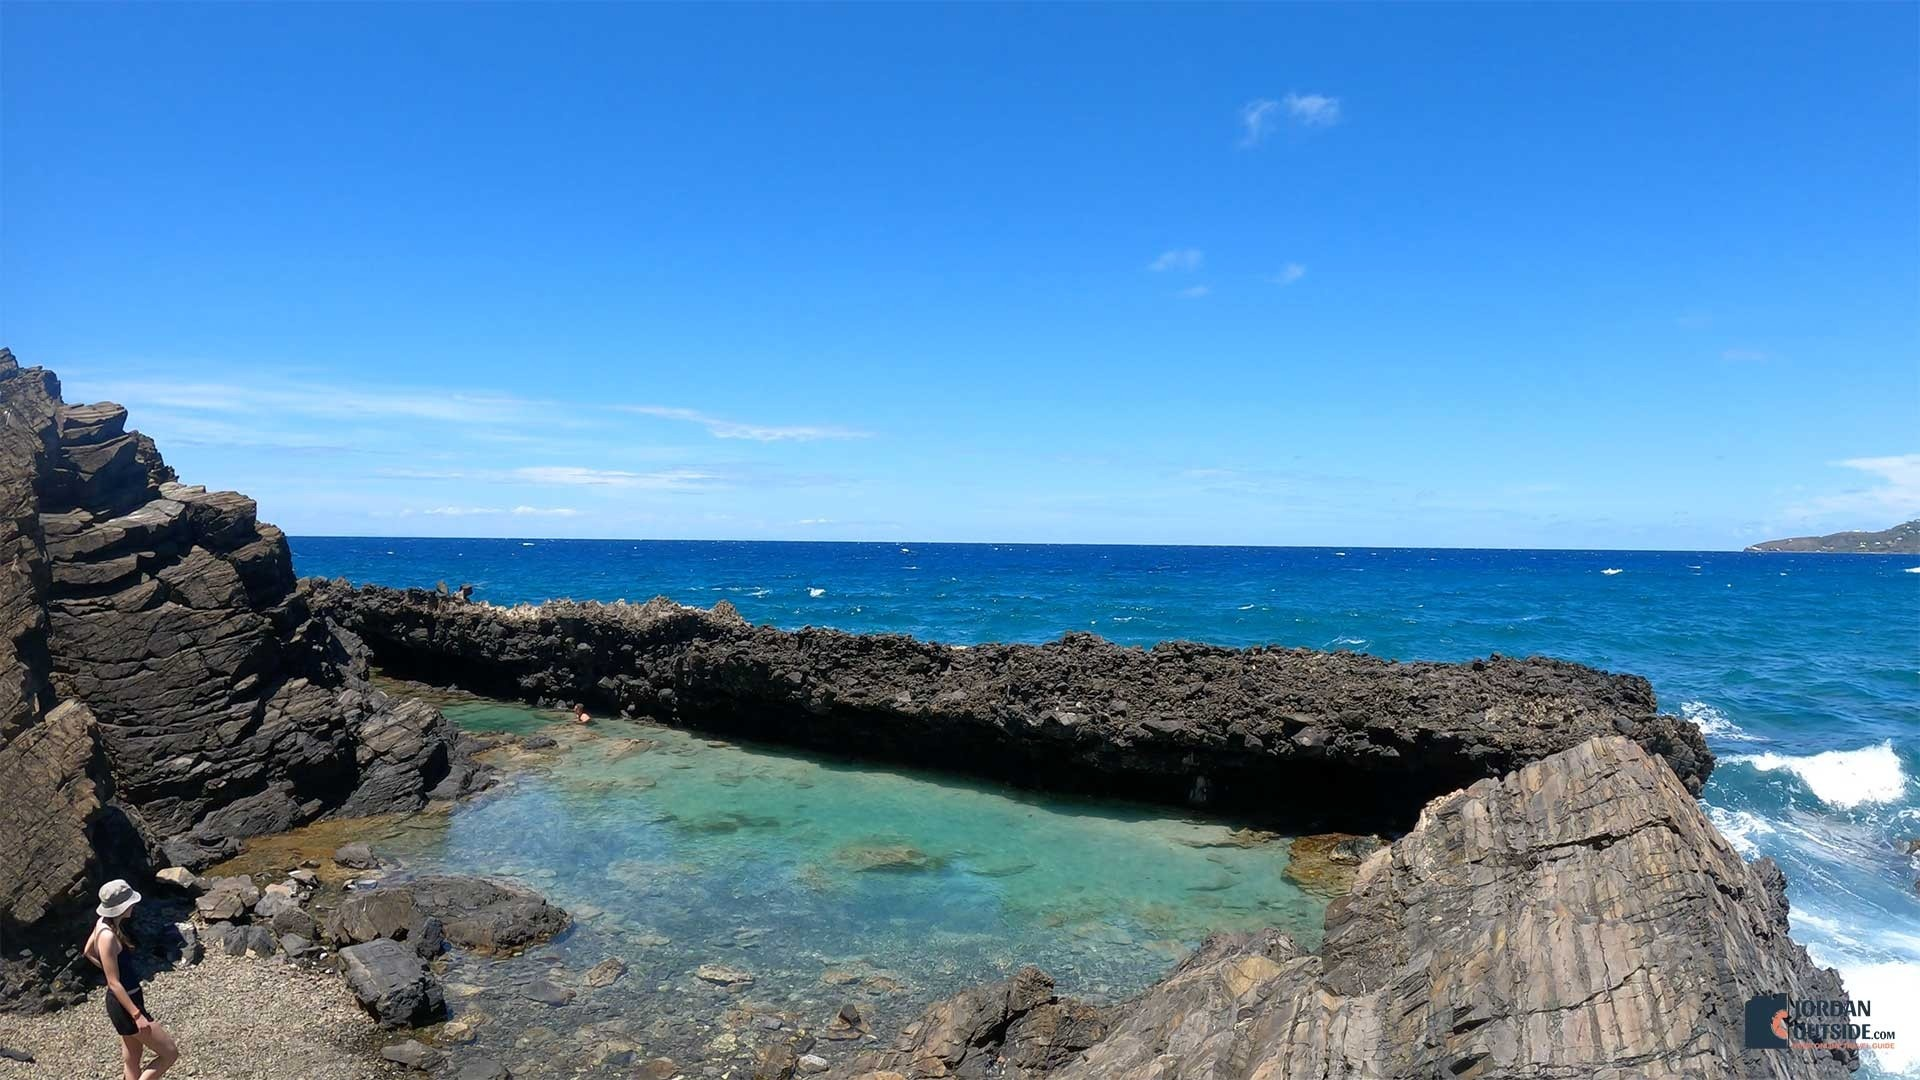 The view of the tide pools from the climb